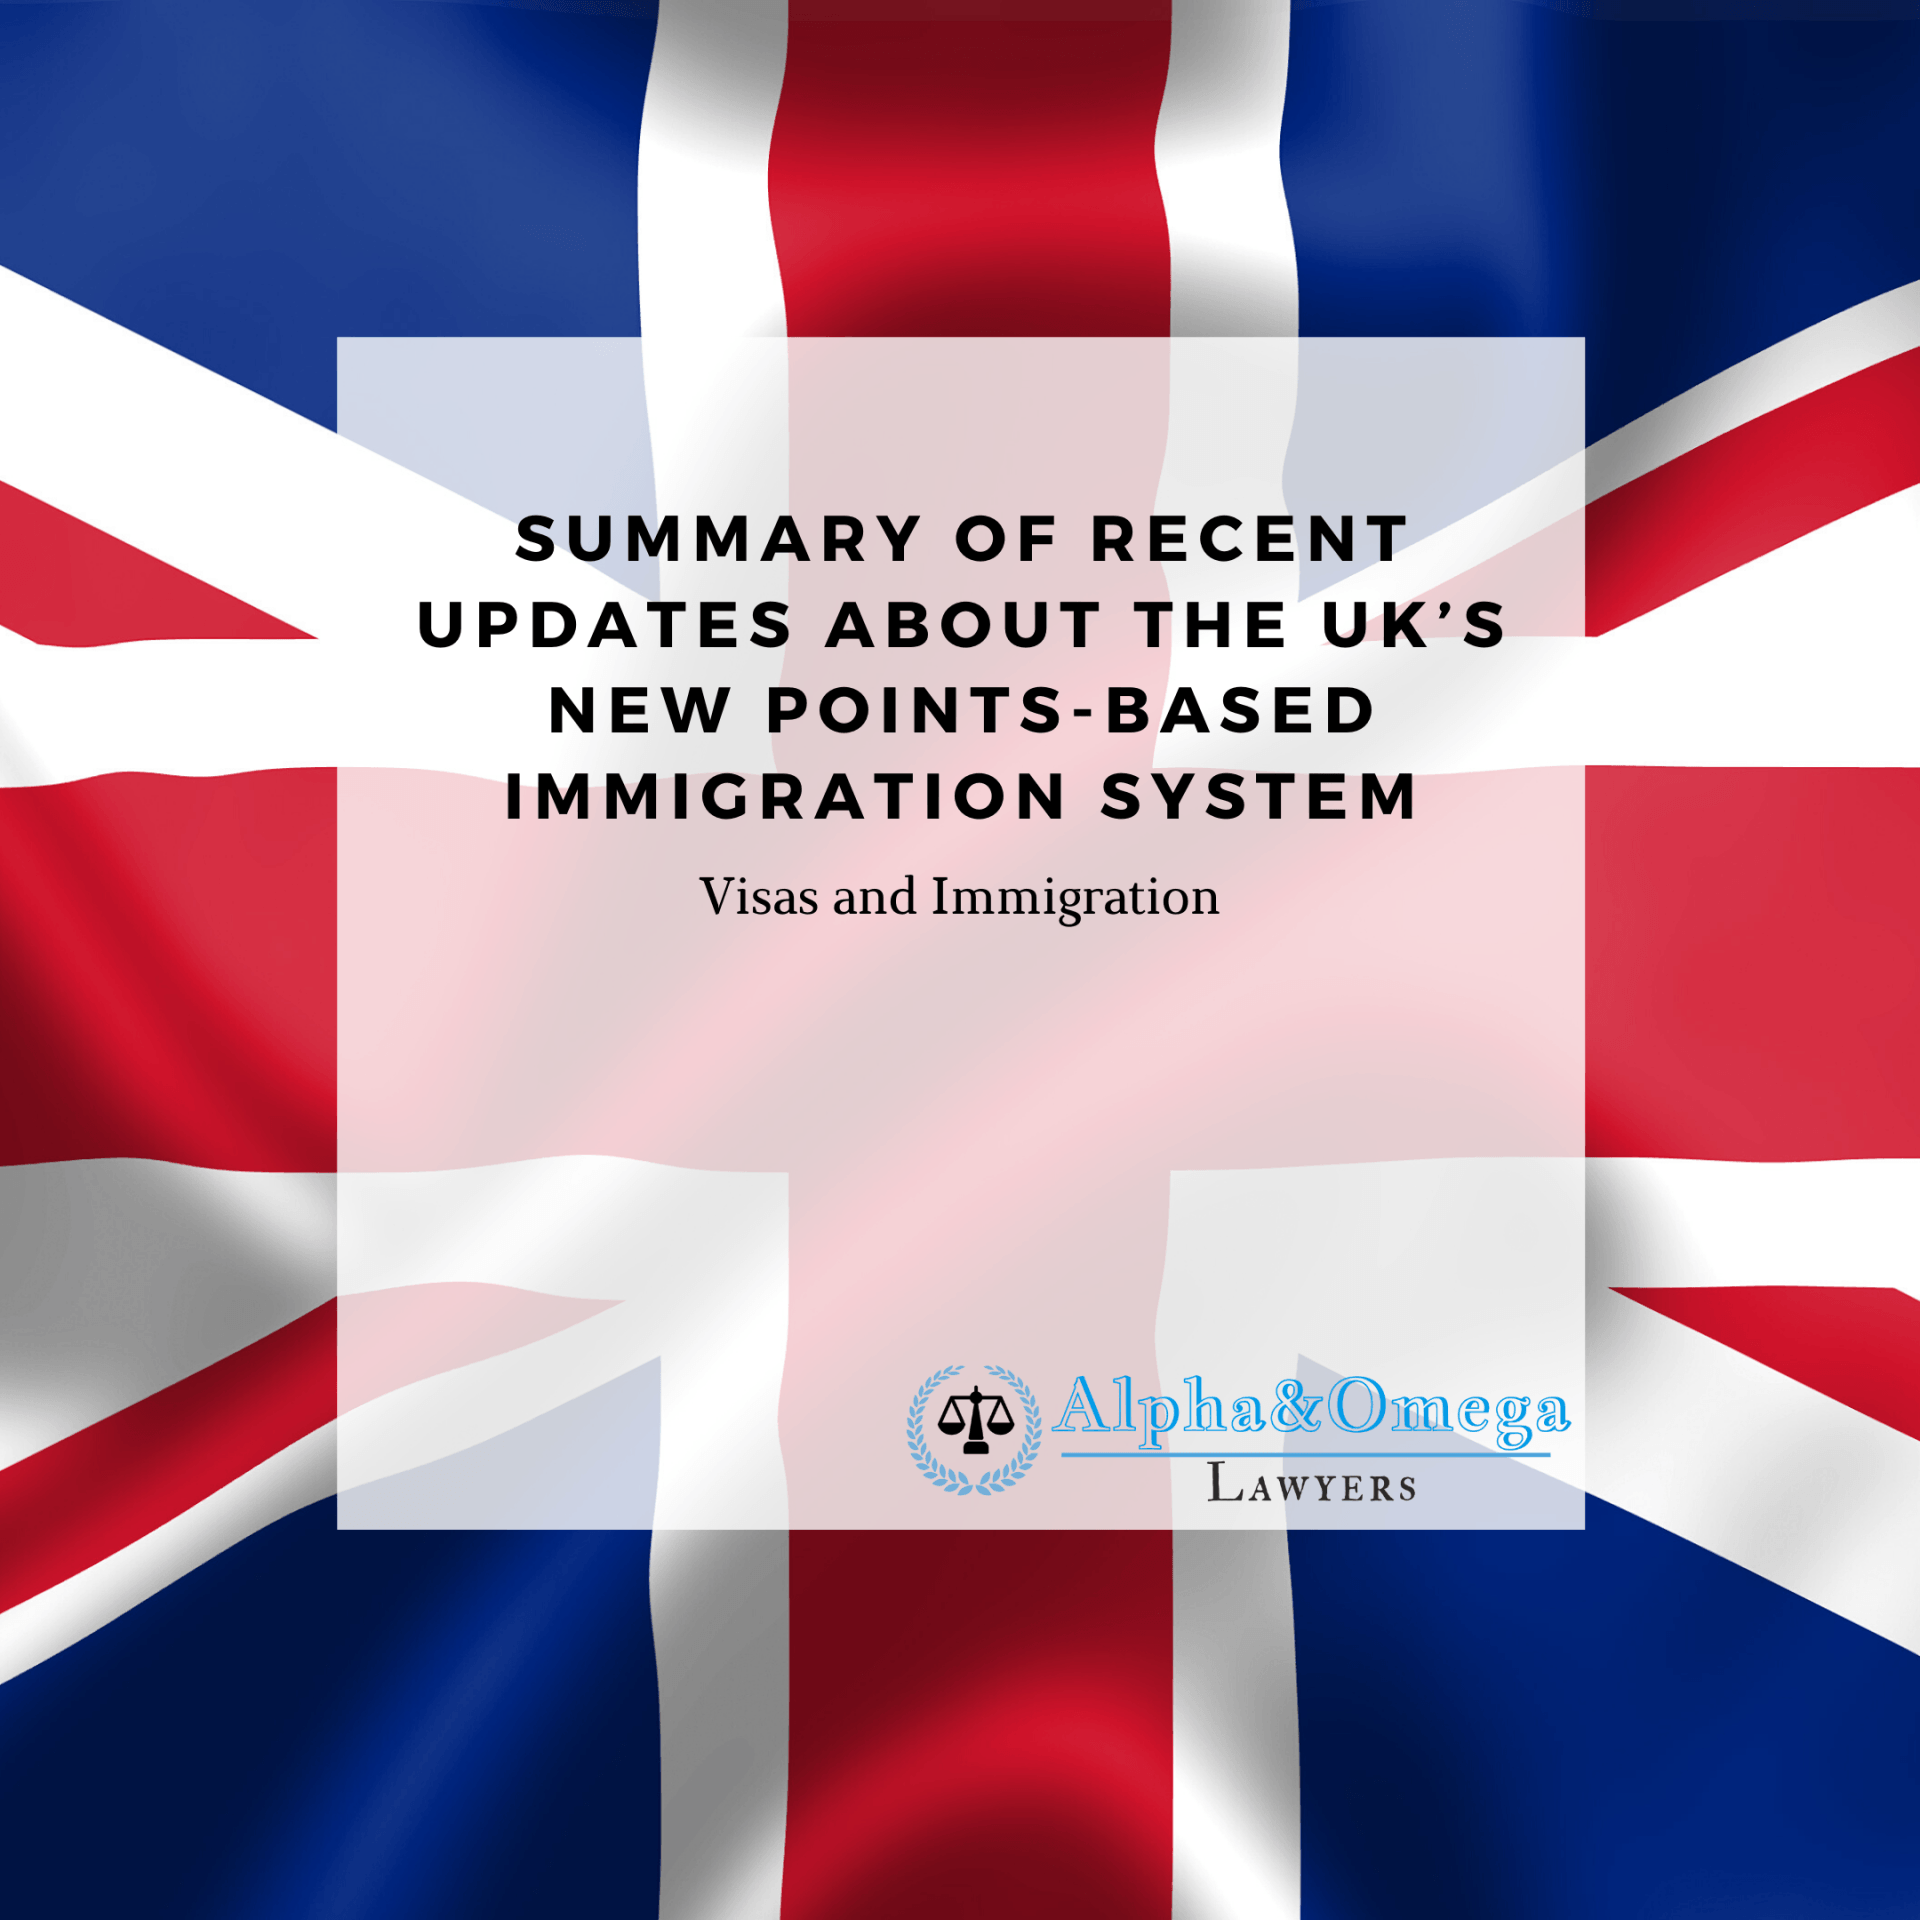 Summary Of Recent Updates About The UK's New Points-Based